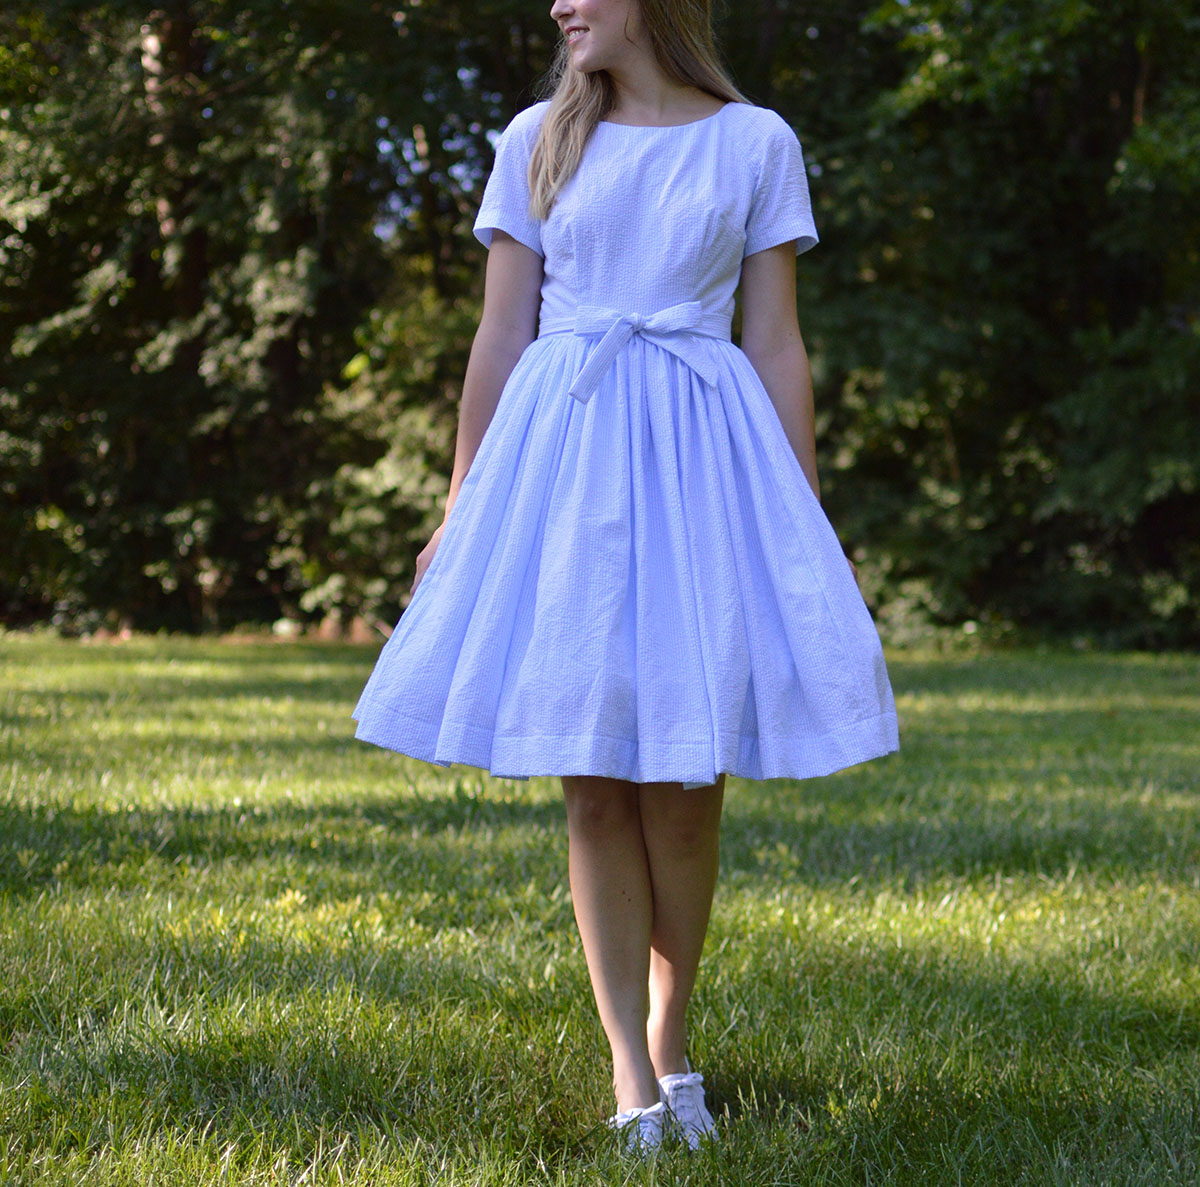 fc5b24944214 If you've been reading--or even better, sewing--along this month over on the  Bernina WeAllSew blog, you'll know I've been making myself a vintage dress  ...